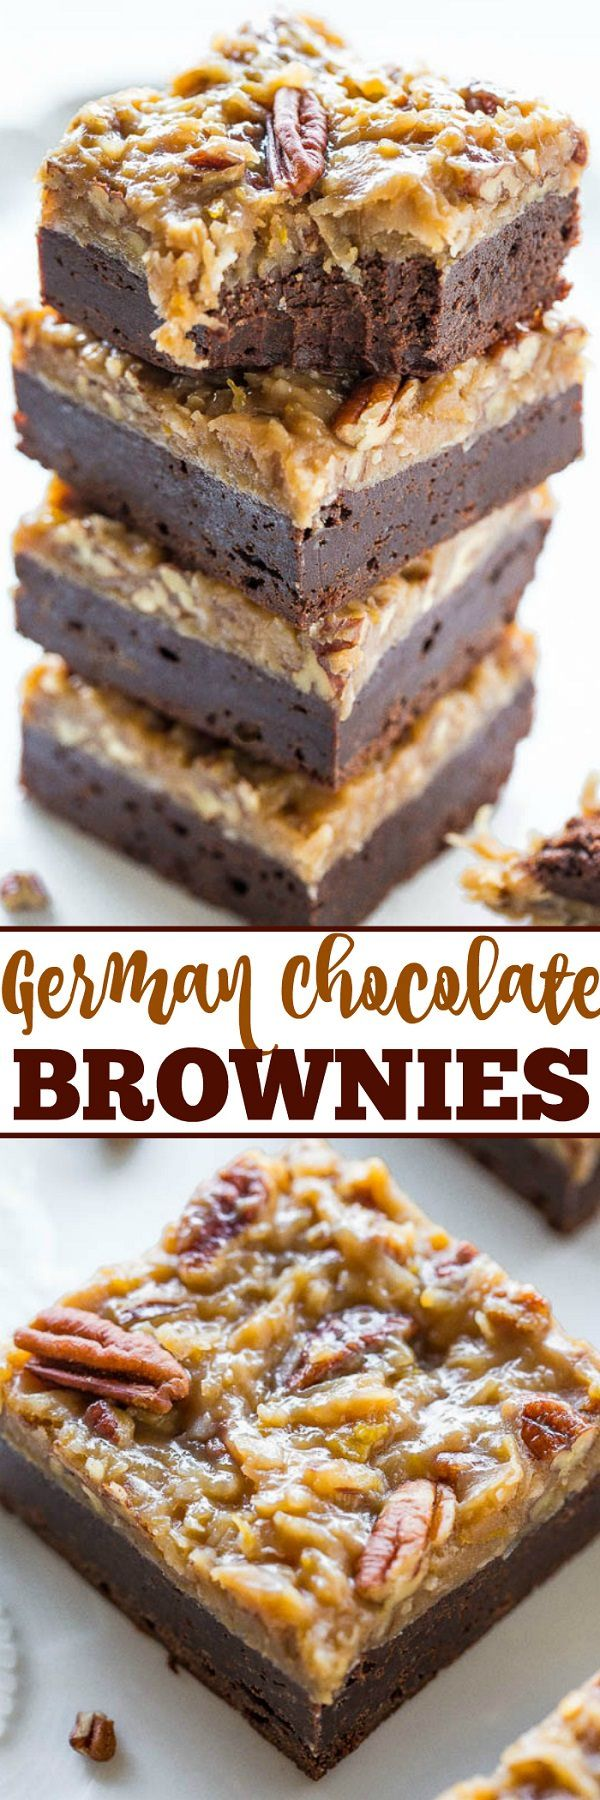 Dense, rich, fudgy brownies topped with a coconut and pecan frosting that's sweet and full of texture from shredded coconut and pecans.